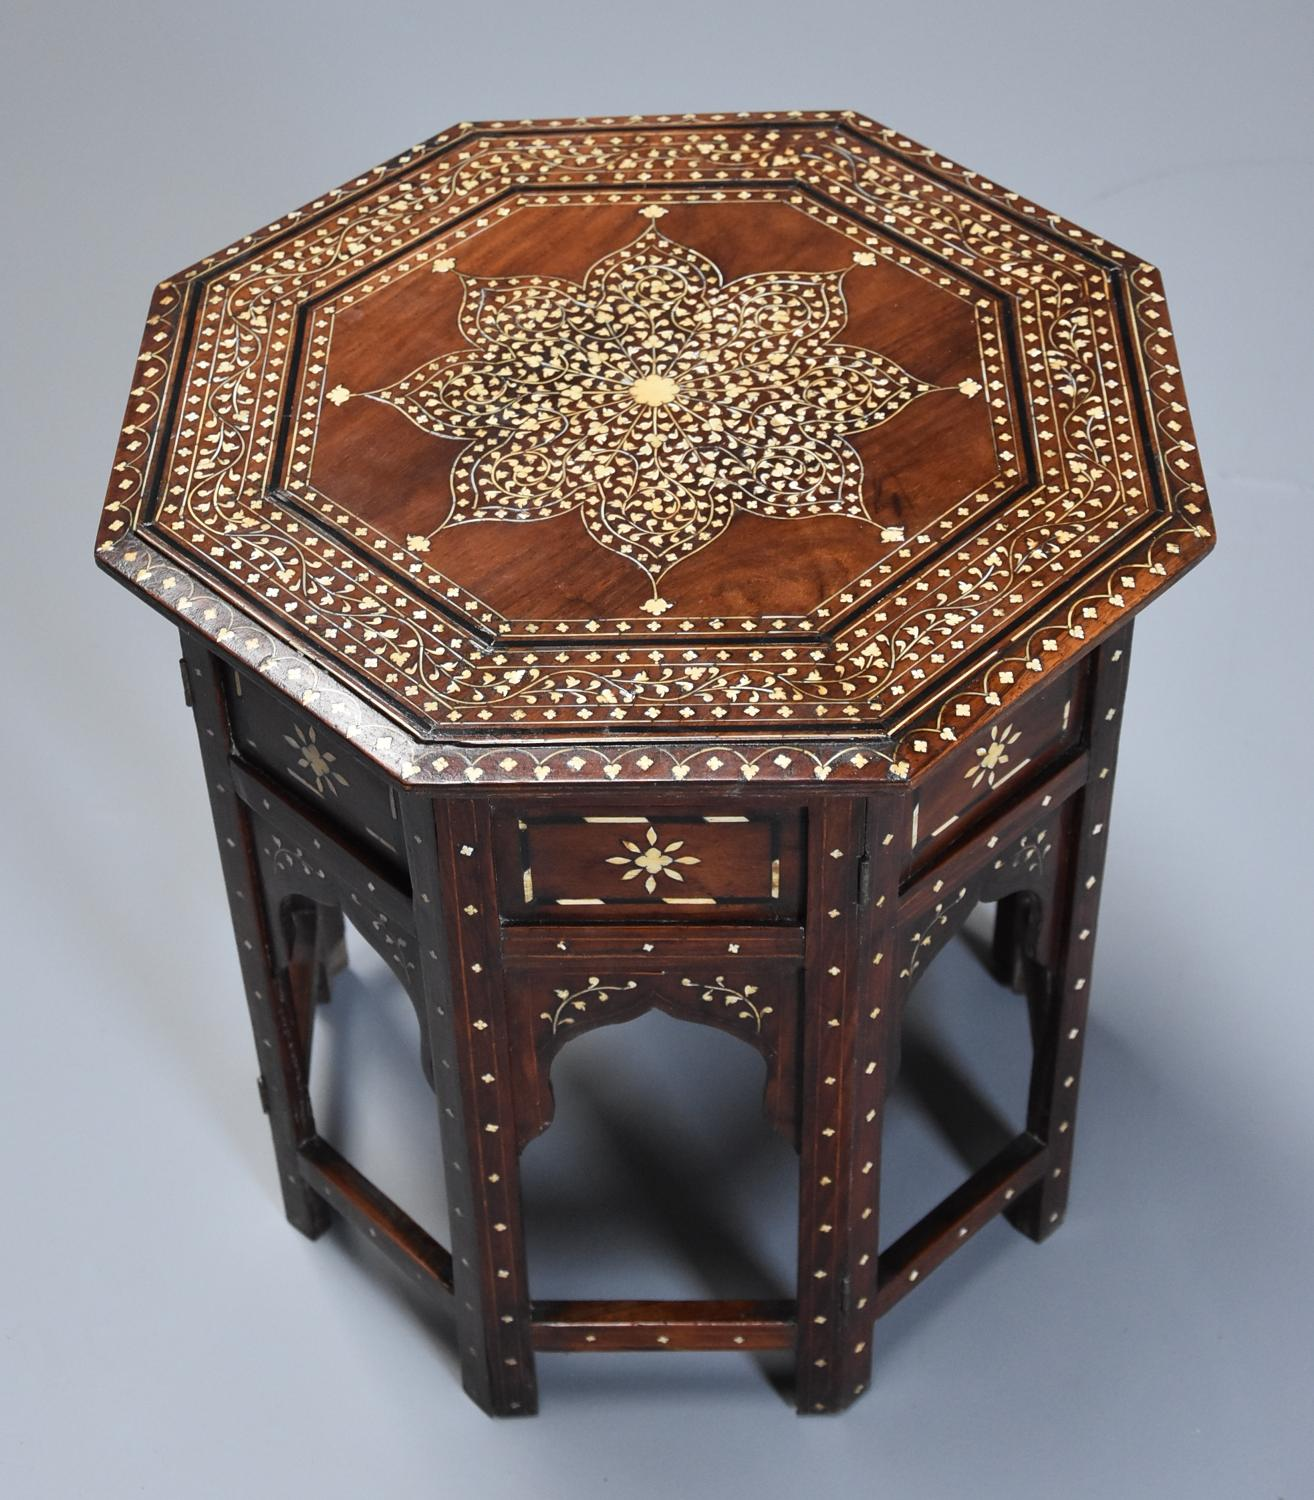 Highly decorative 19thc ivory inlaid Anglo Indian octagonal table